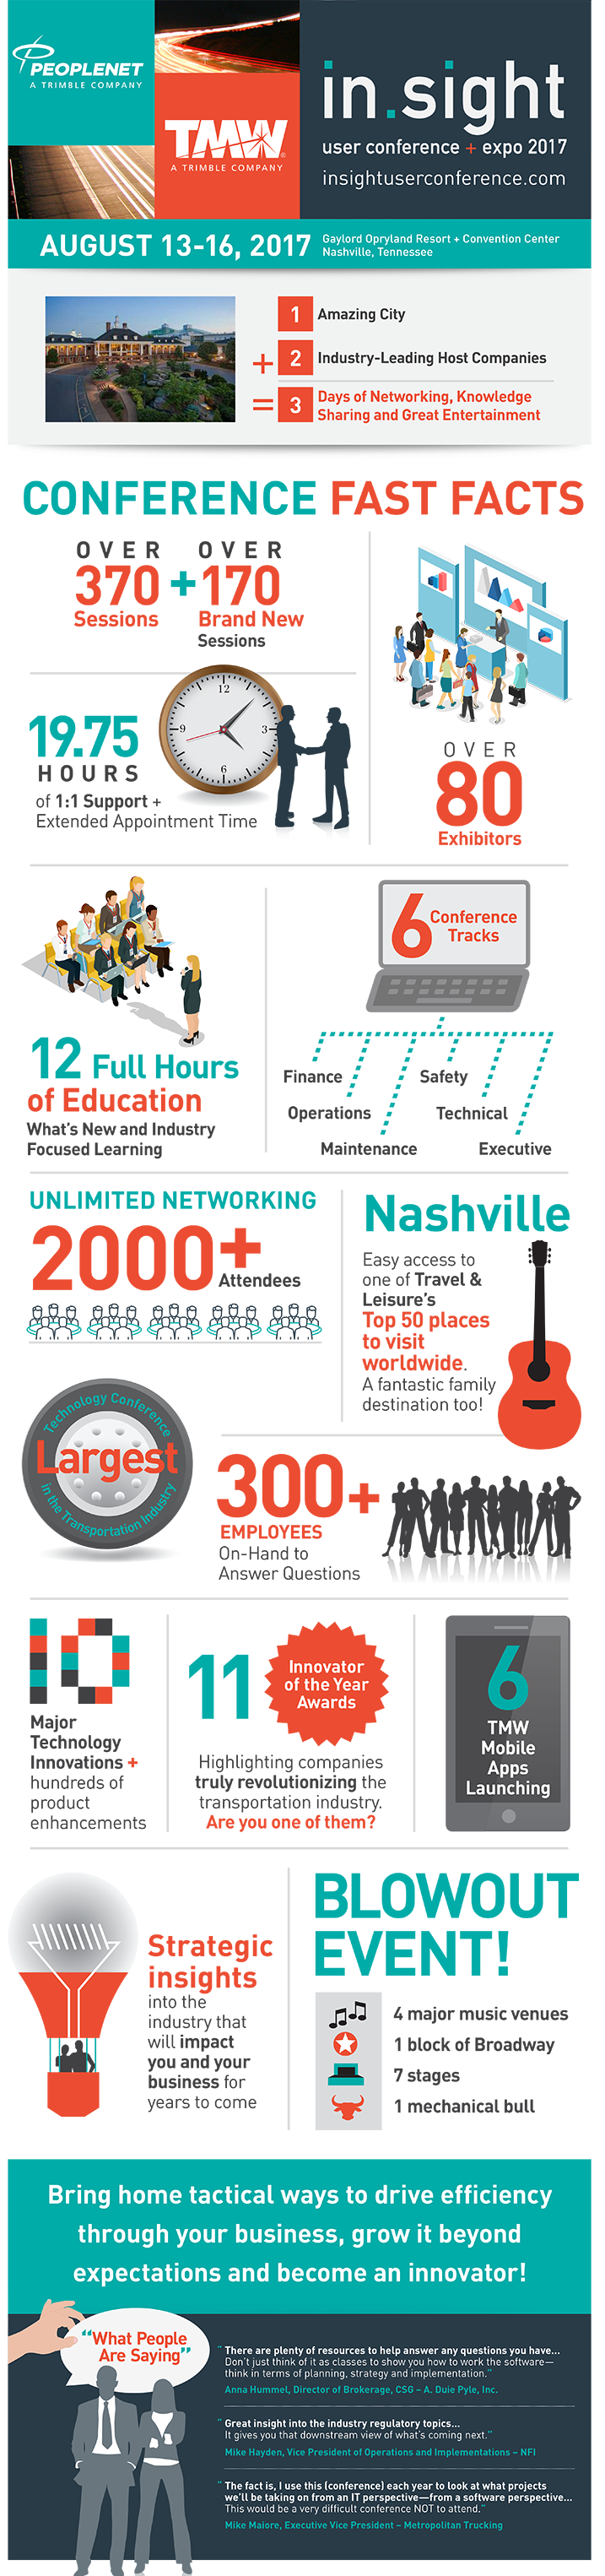 TMW_2017InsightConference_Infographic_v4-0505_crop.png